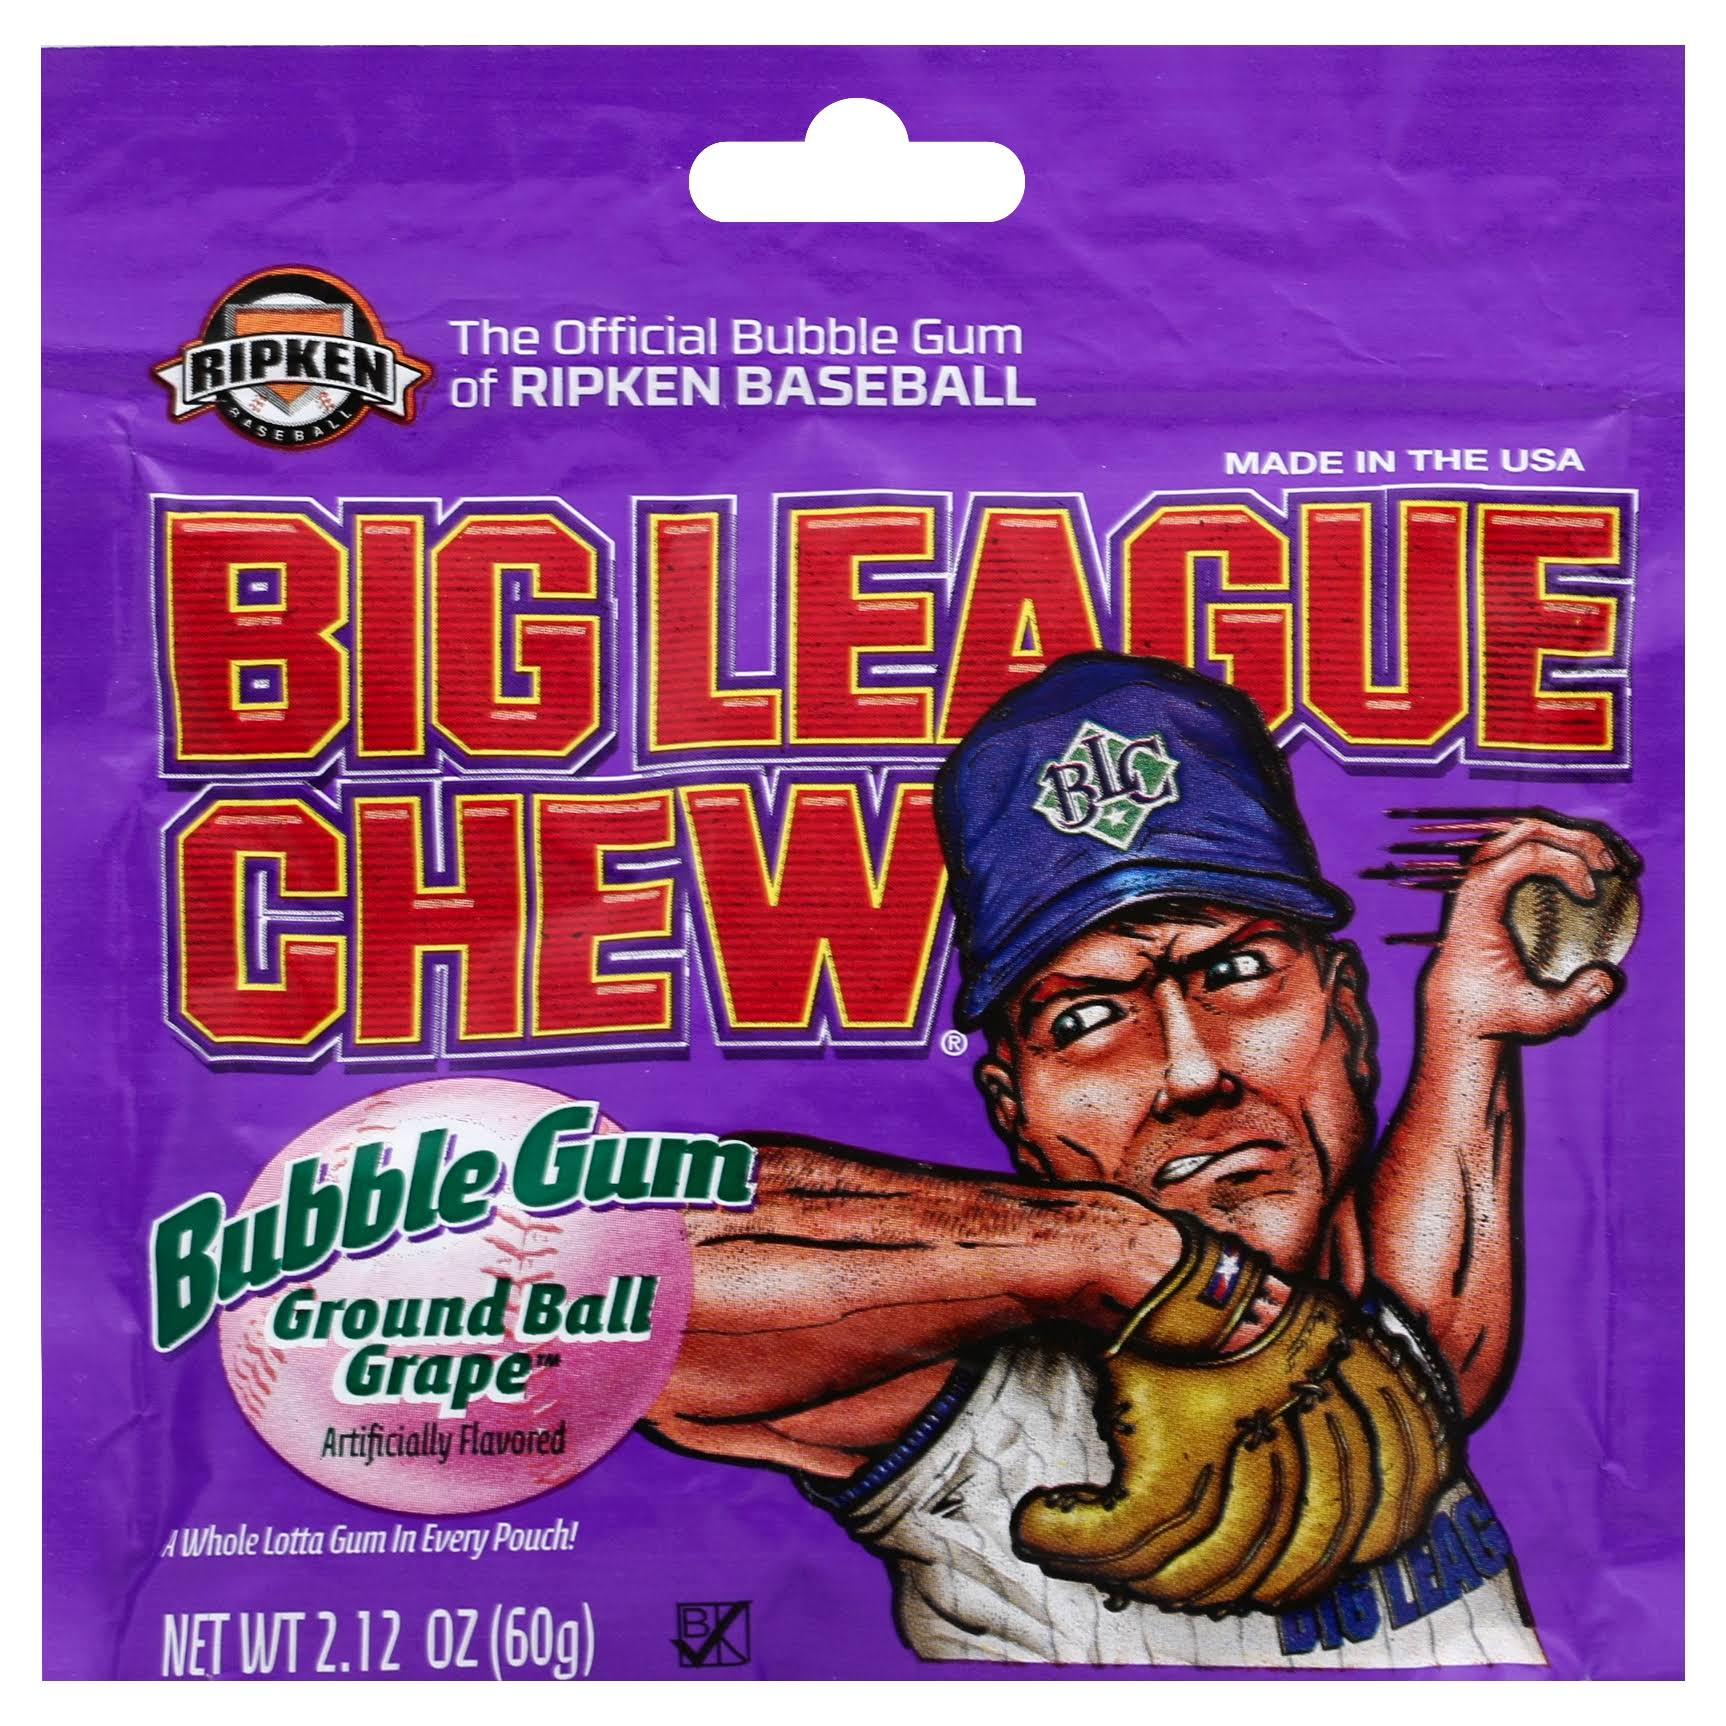 Big League Chew Bubble Gum - Ground Ball Grape, 2.12oz, 12 Pack